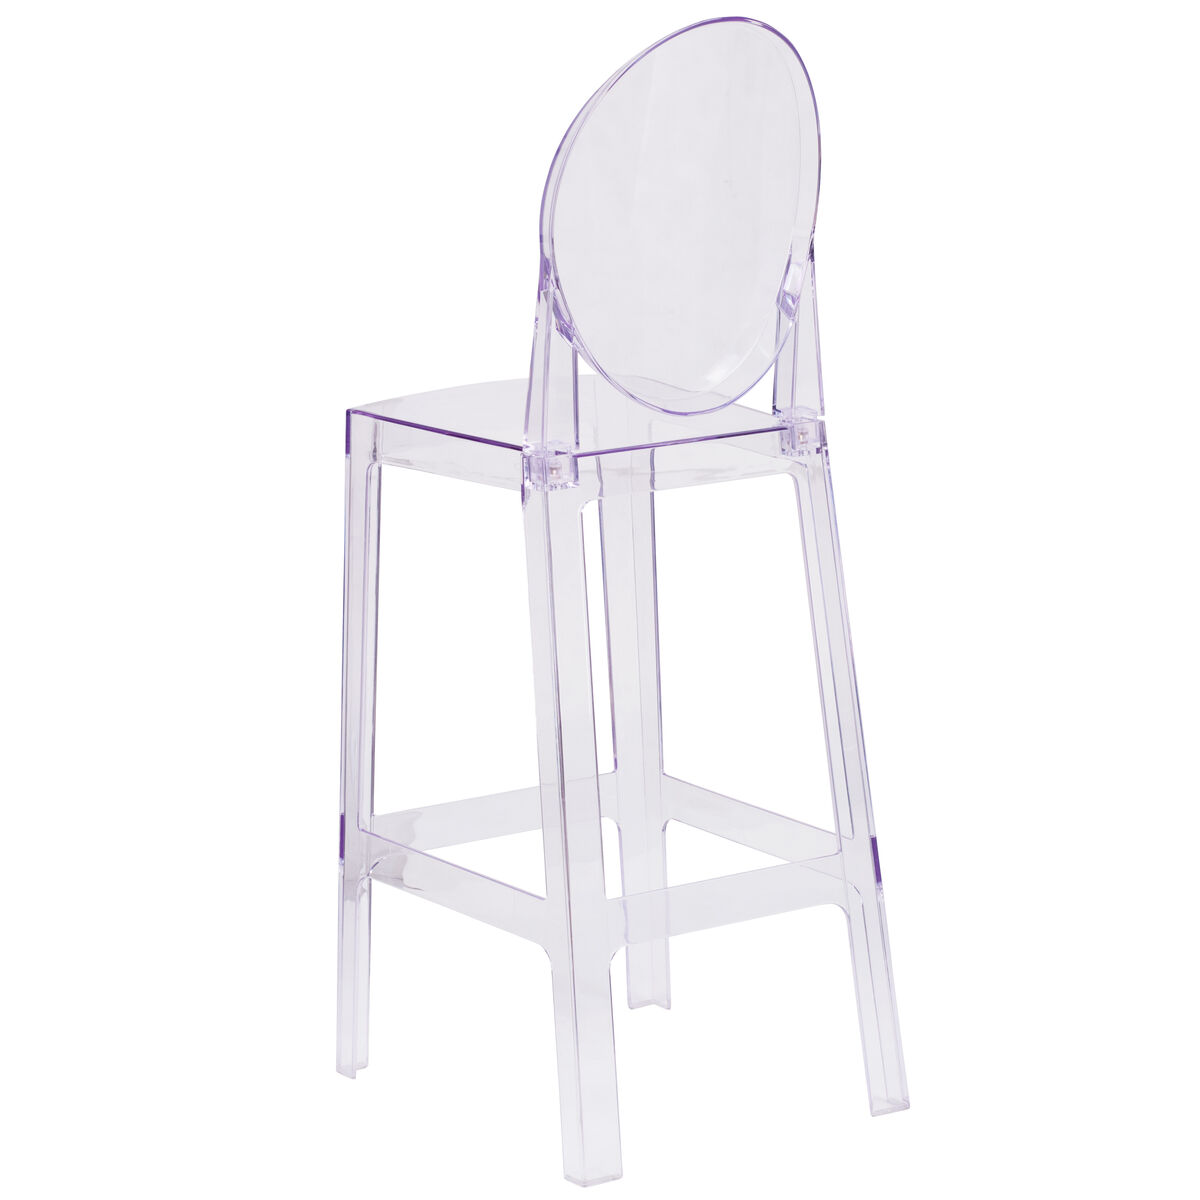 Awe Inspiring Ghost Barstool With Oval Back In Transparent Crystal Download Free Architecture Designs Rallybritishbridgeorg